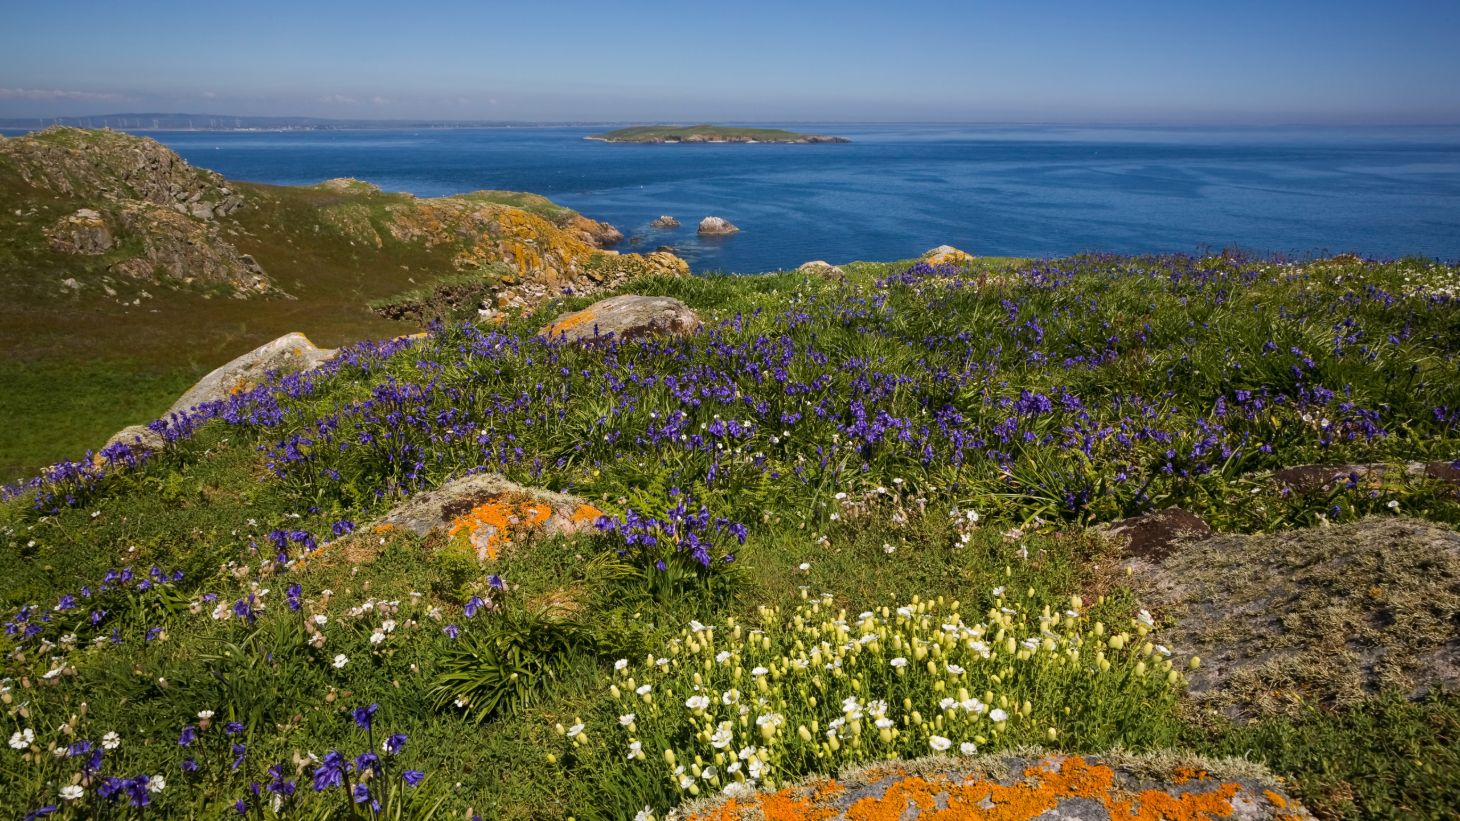 Visit Wexford and discover the coastal view of the Saltee Islands.